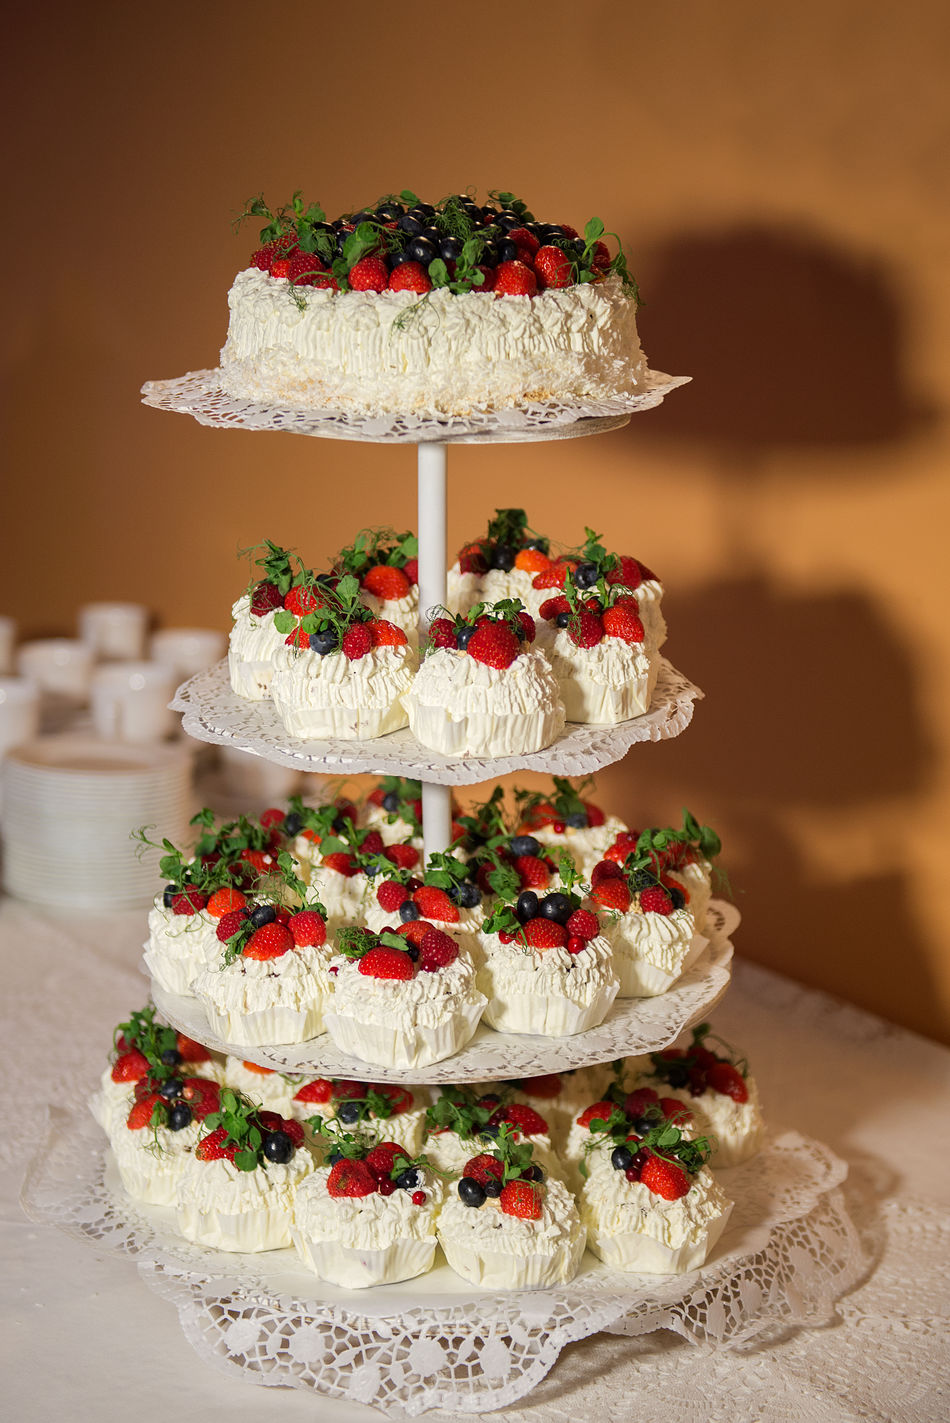 Backgrounds Cake Close-up Day Dessert Food Food And Drink Freshness Indoors  Indulgence No People Ready-to-eat Strawberries Sweet Food Temptation Unhealthy Eating Wedding Cake Wedding Details White White And Red